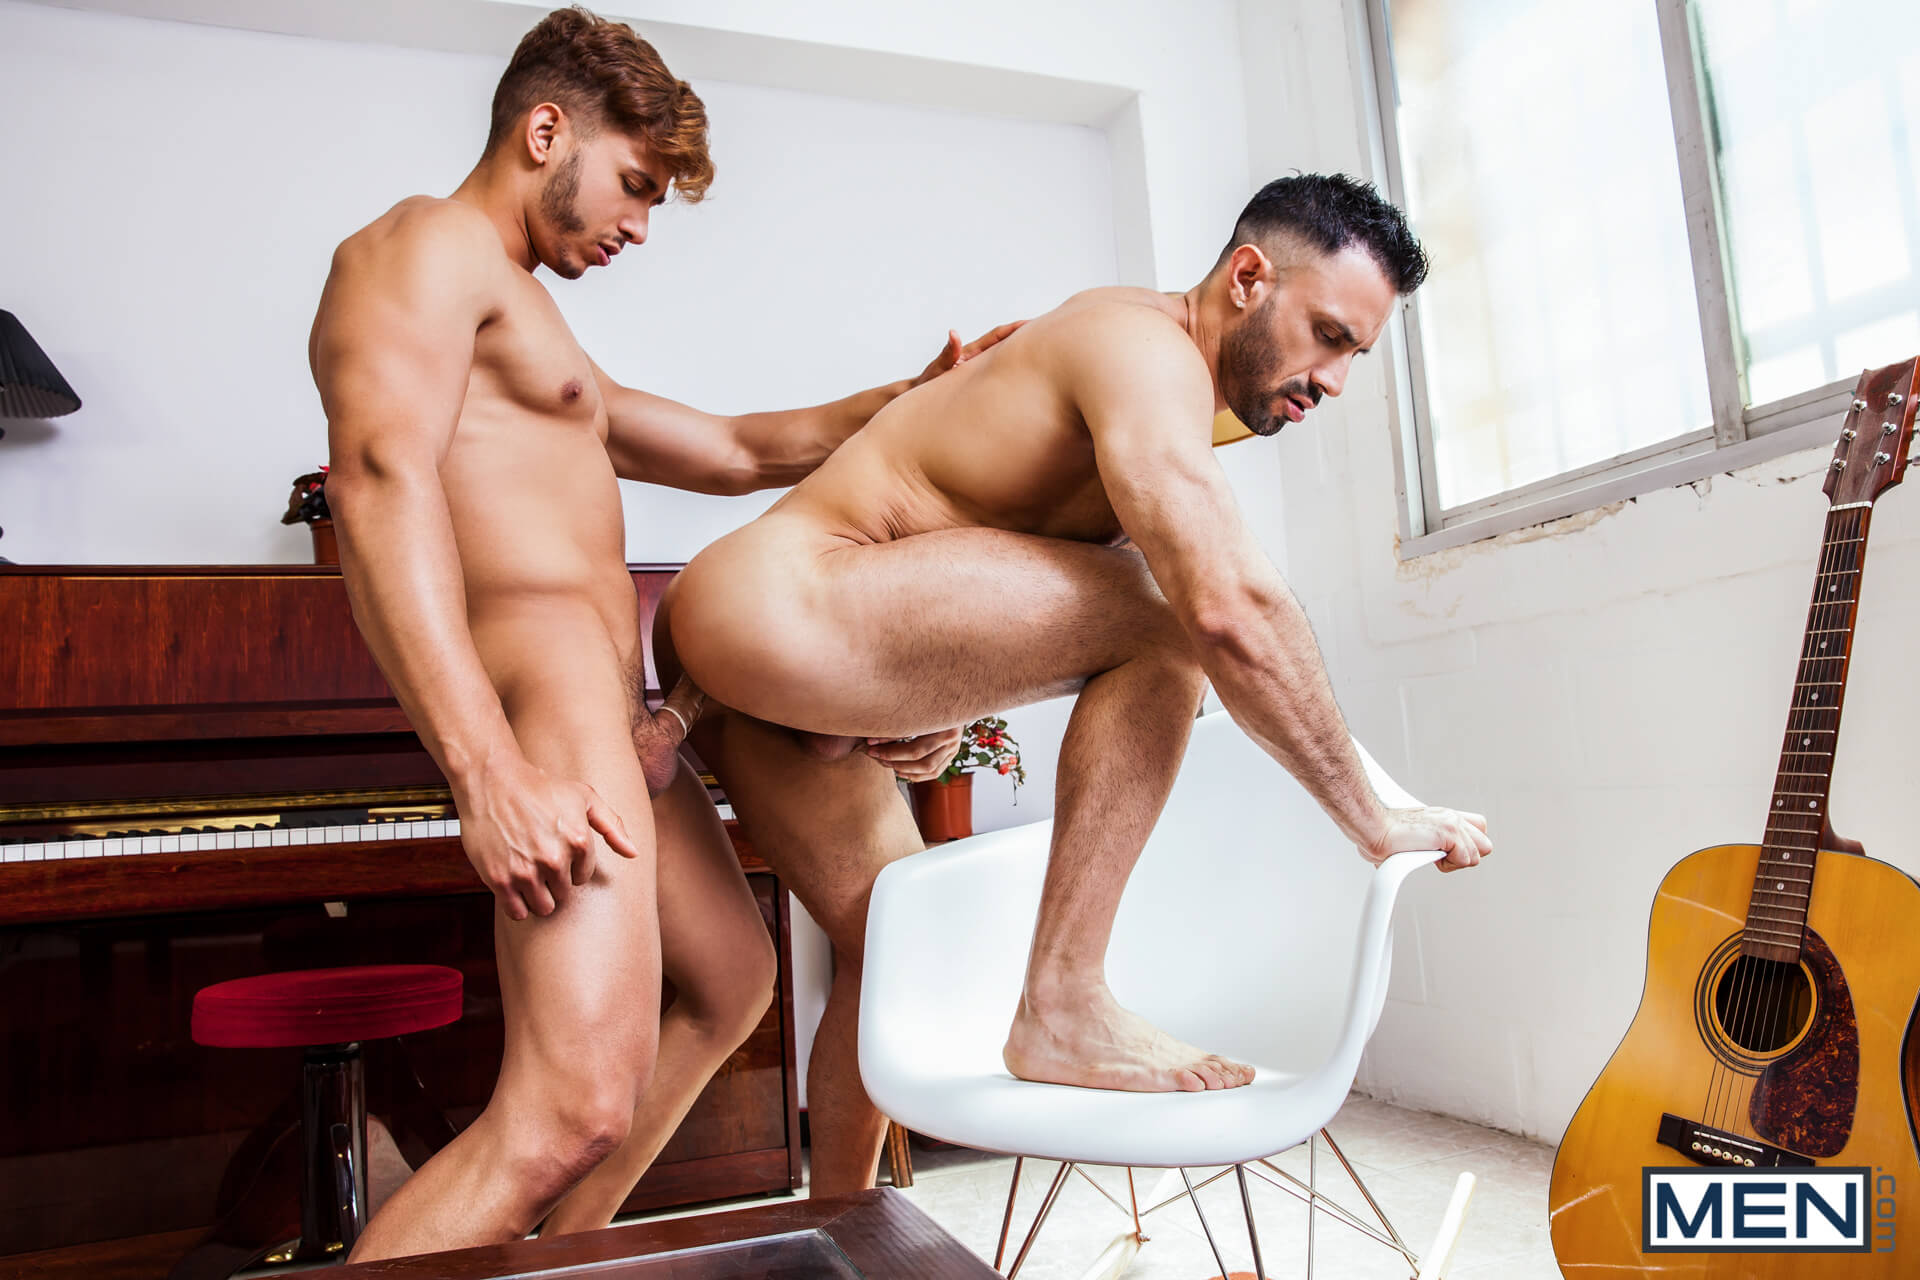 men drill my hole truth or dare part 1 aquiles paris flex gay porn blog image 14